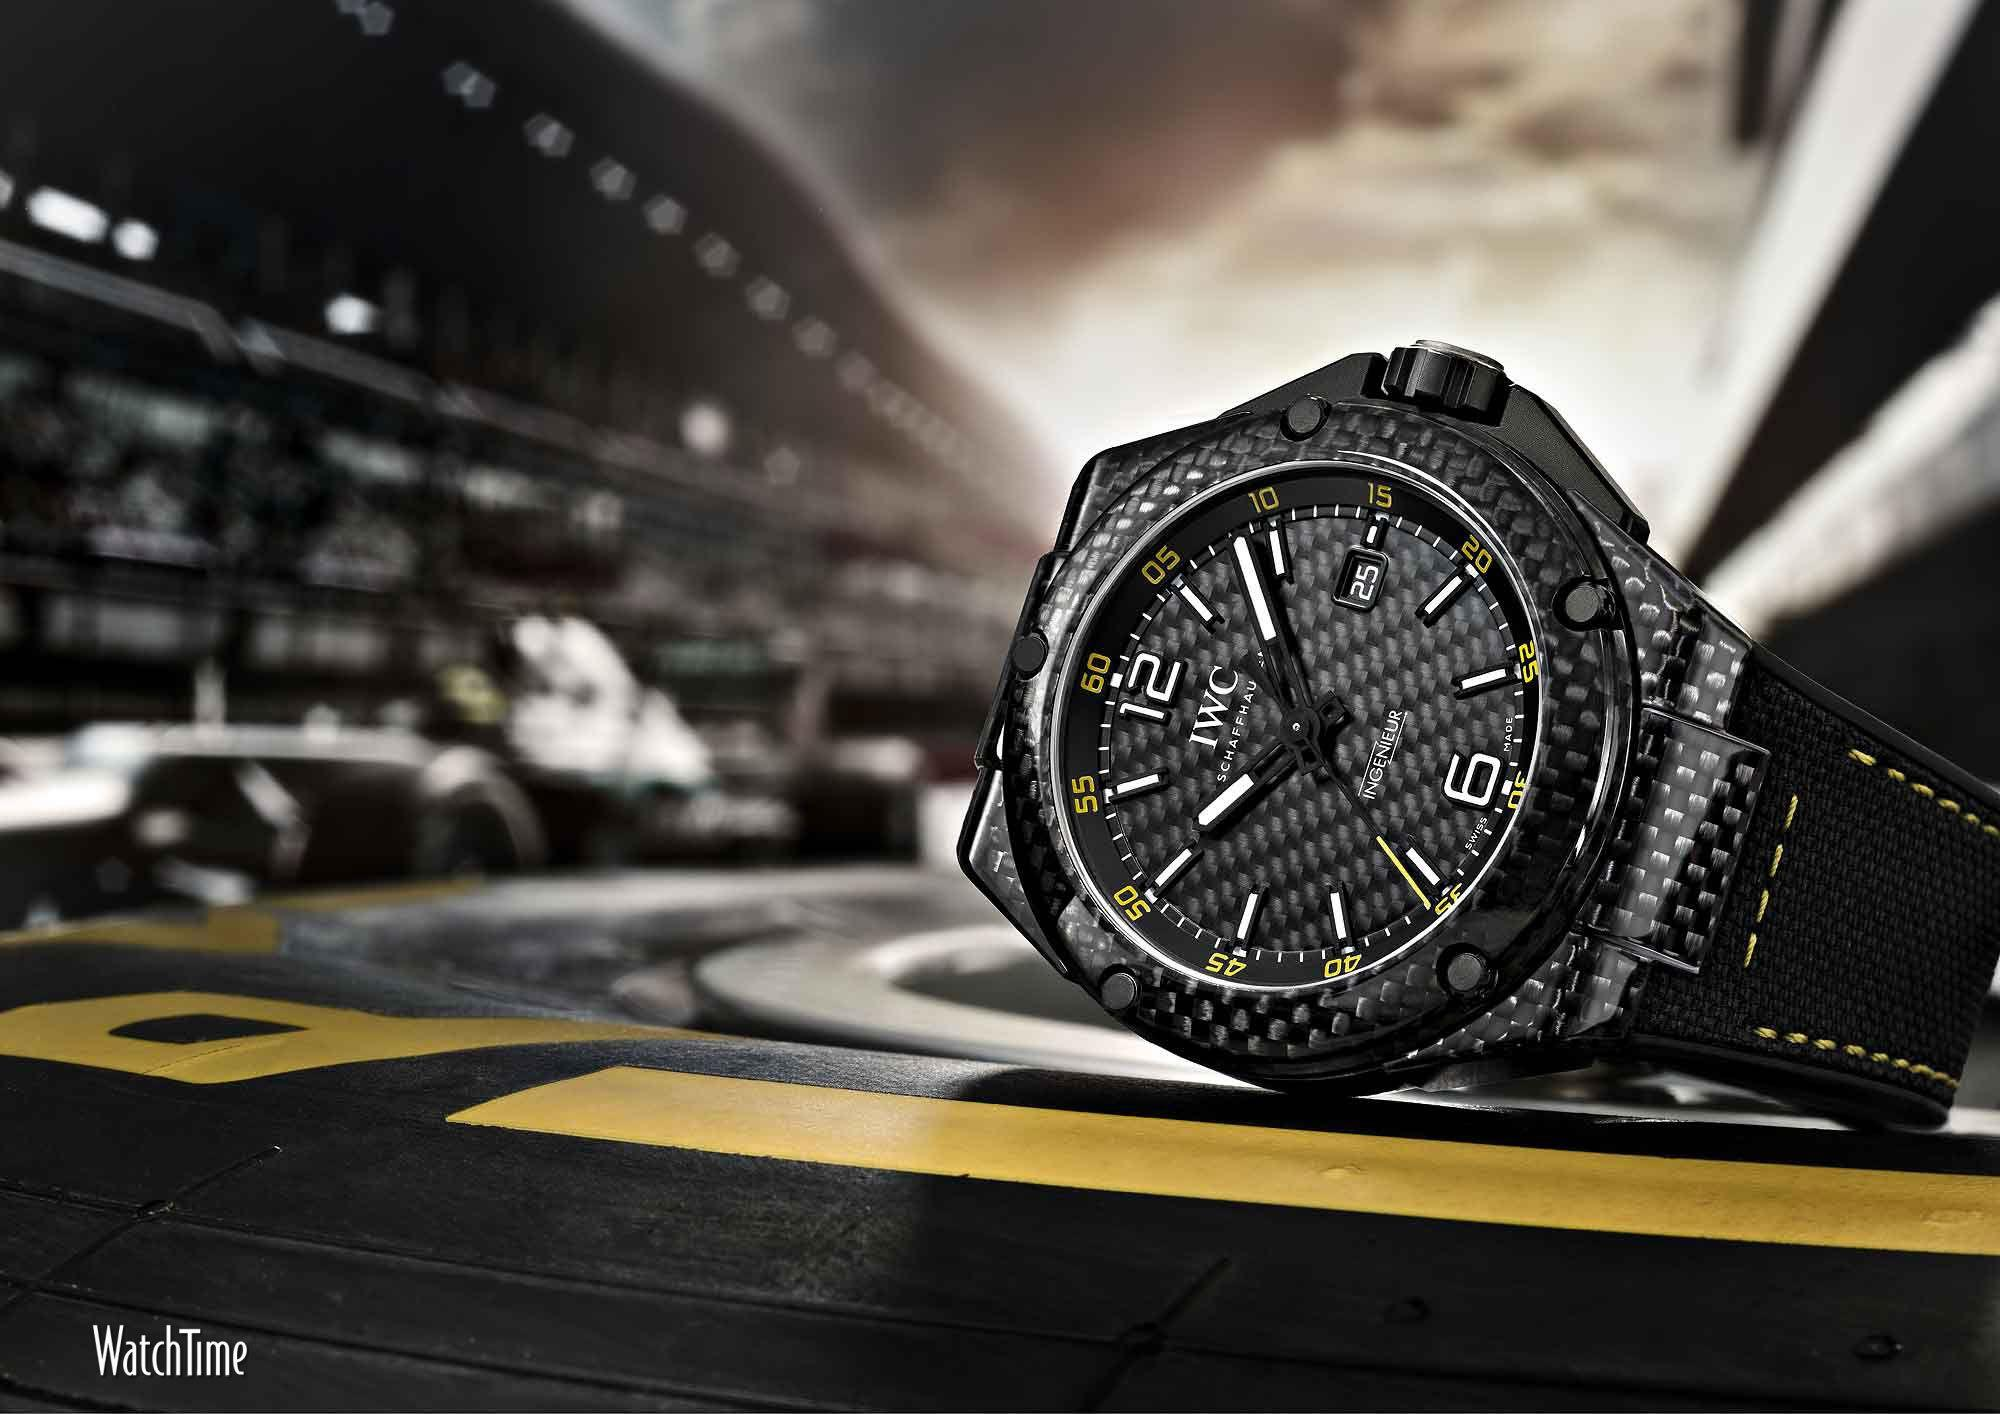 Watches Wallpapers Wallpaper Cave